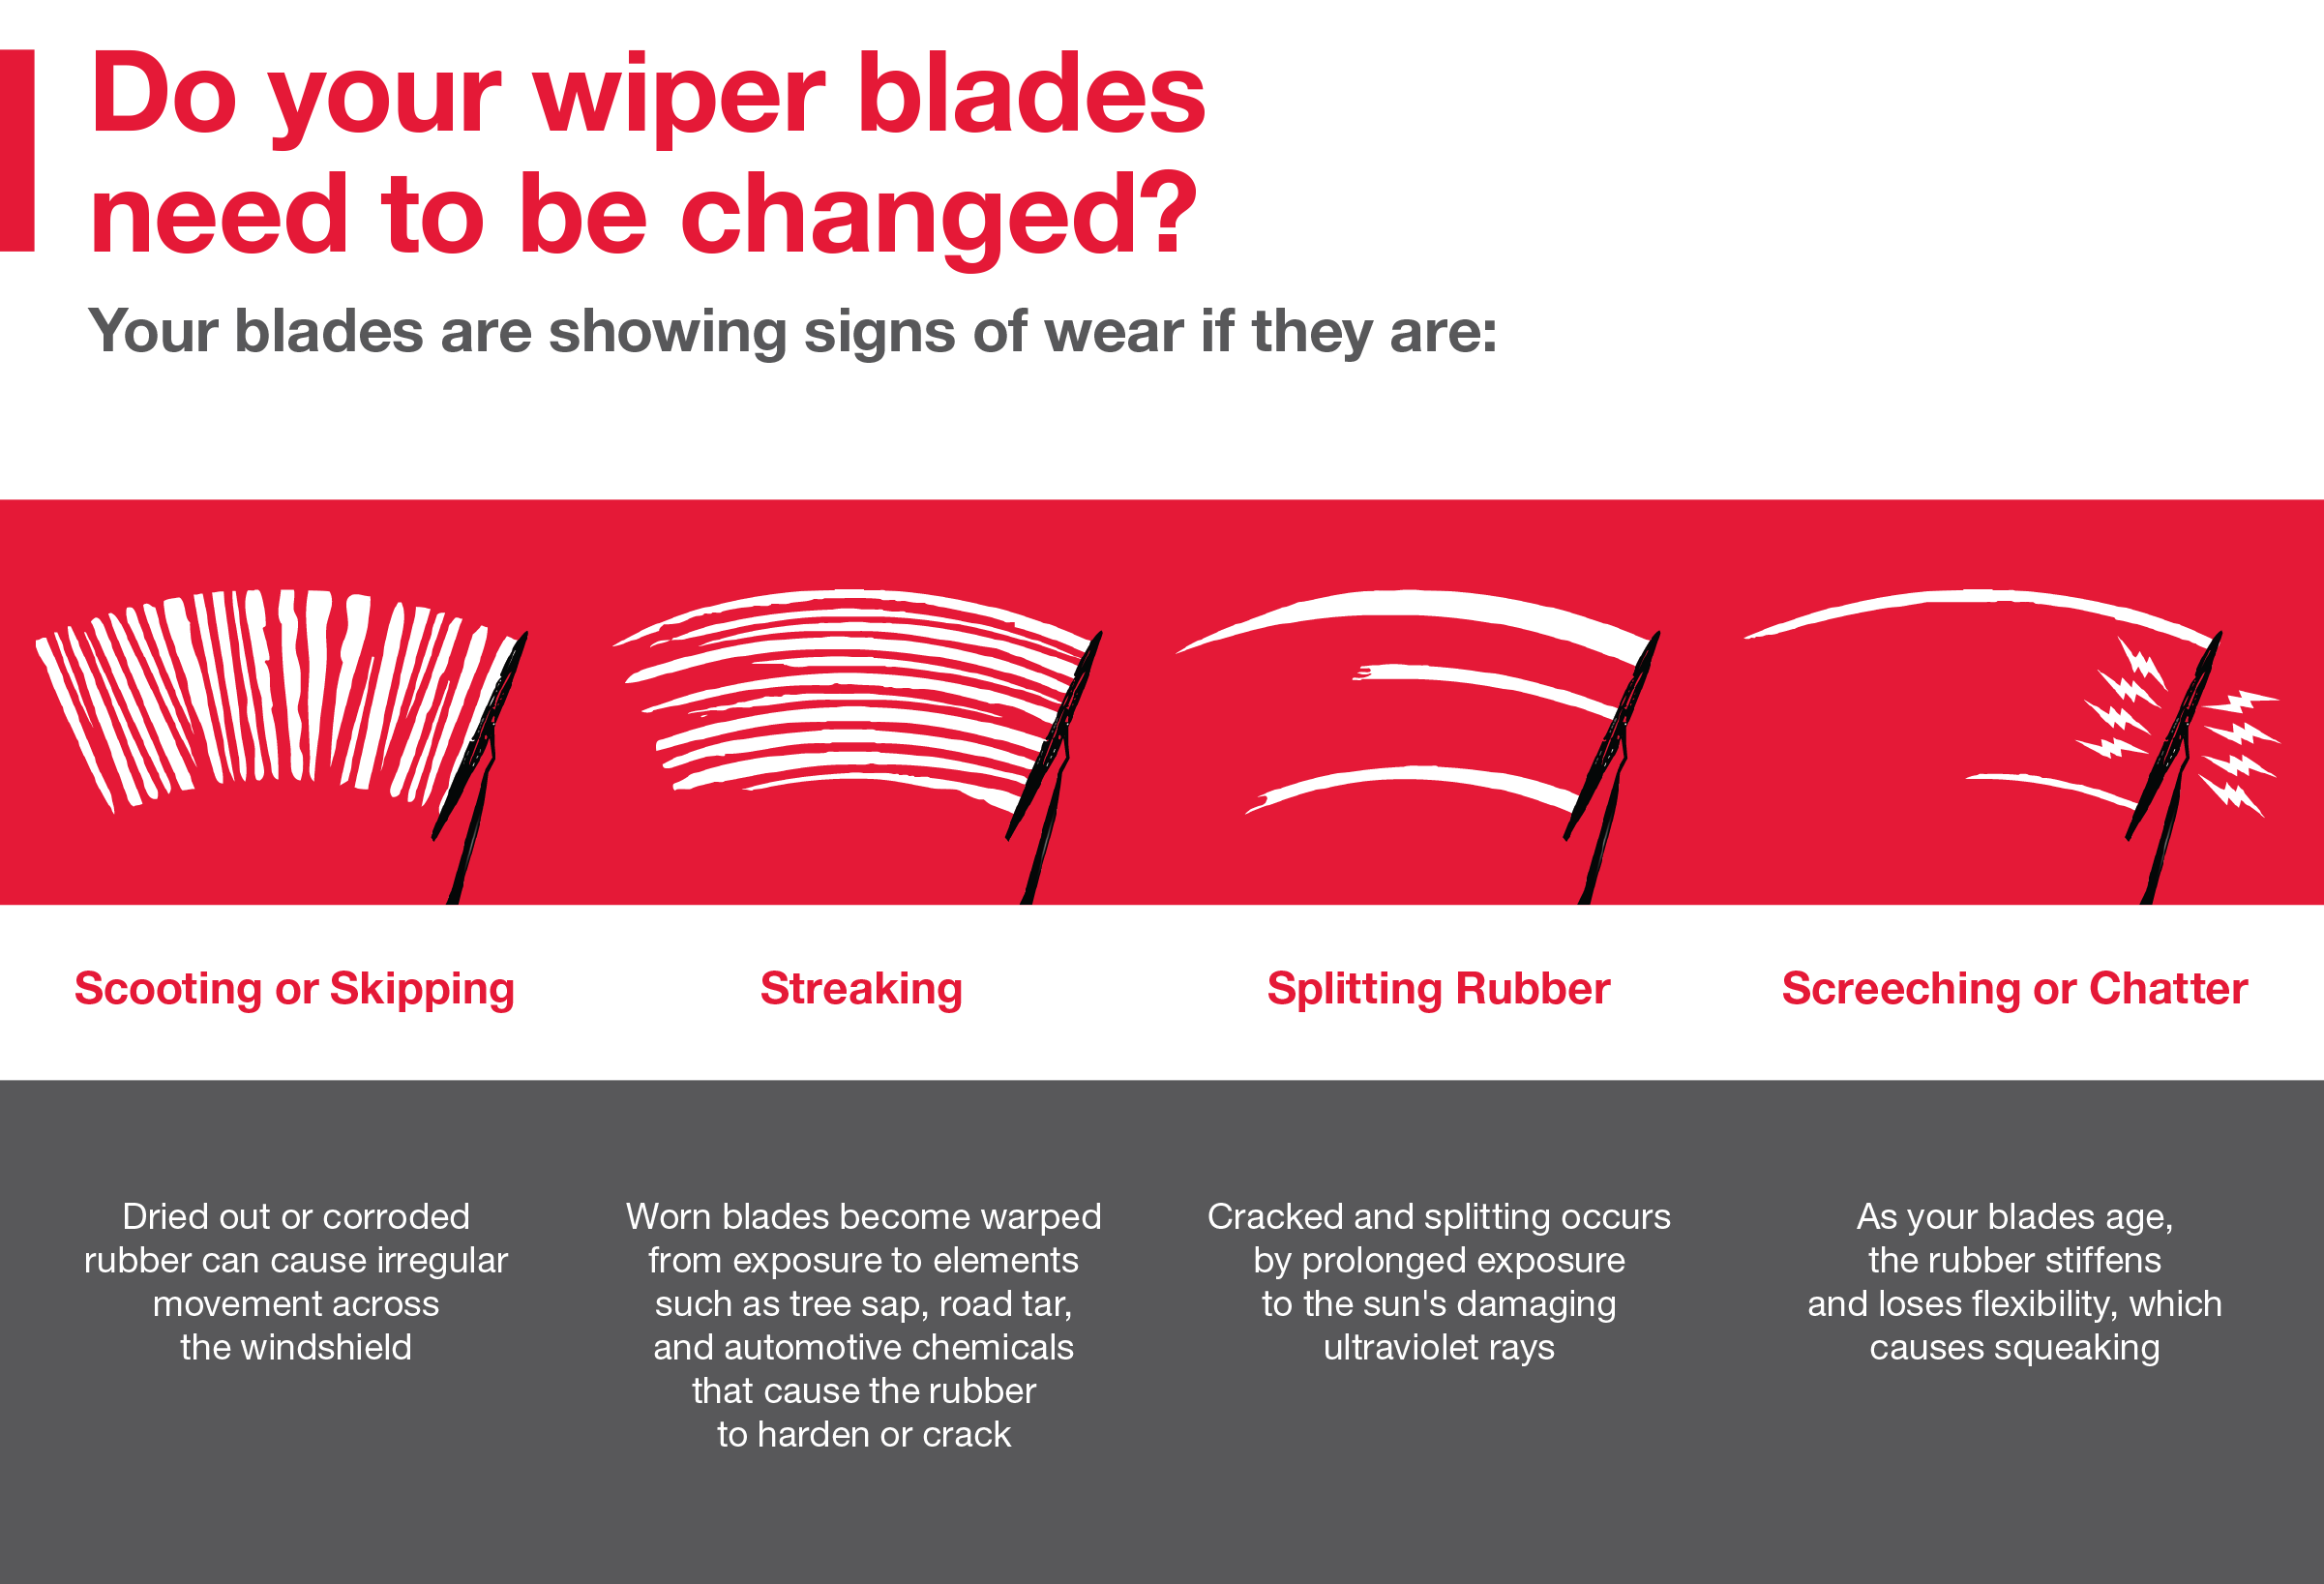 Do your wiper blades need to be changed? Call your local dealer for more info: 724.743.1144